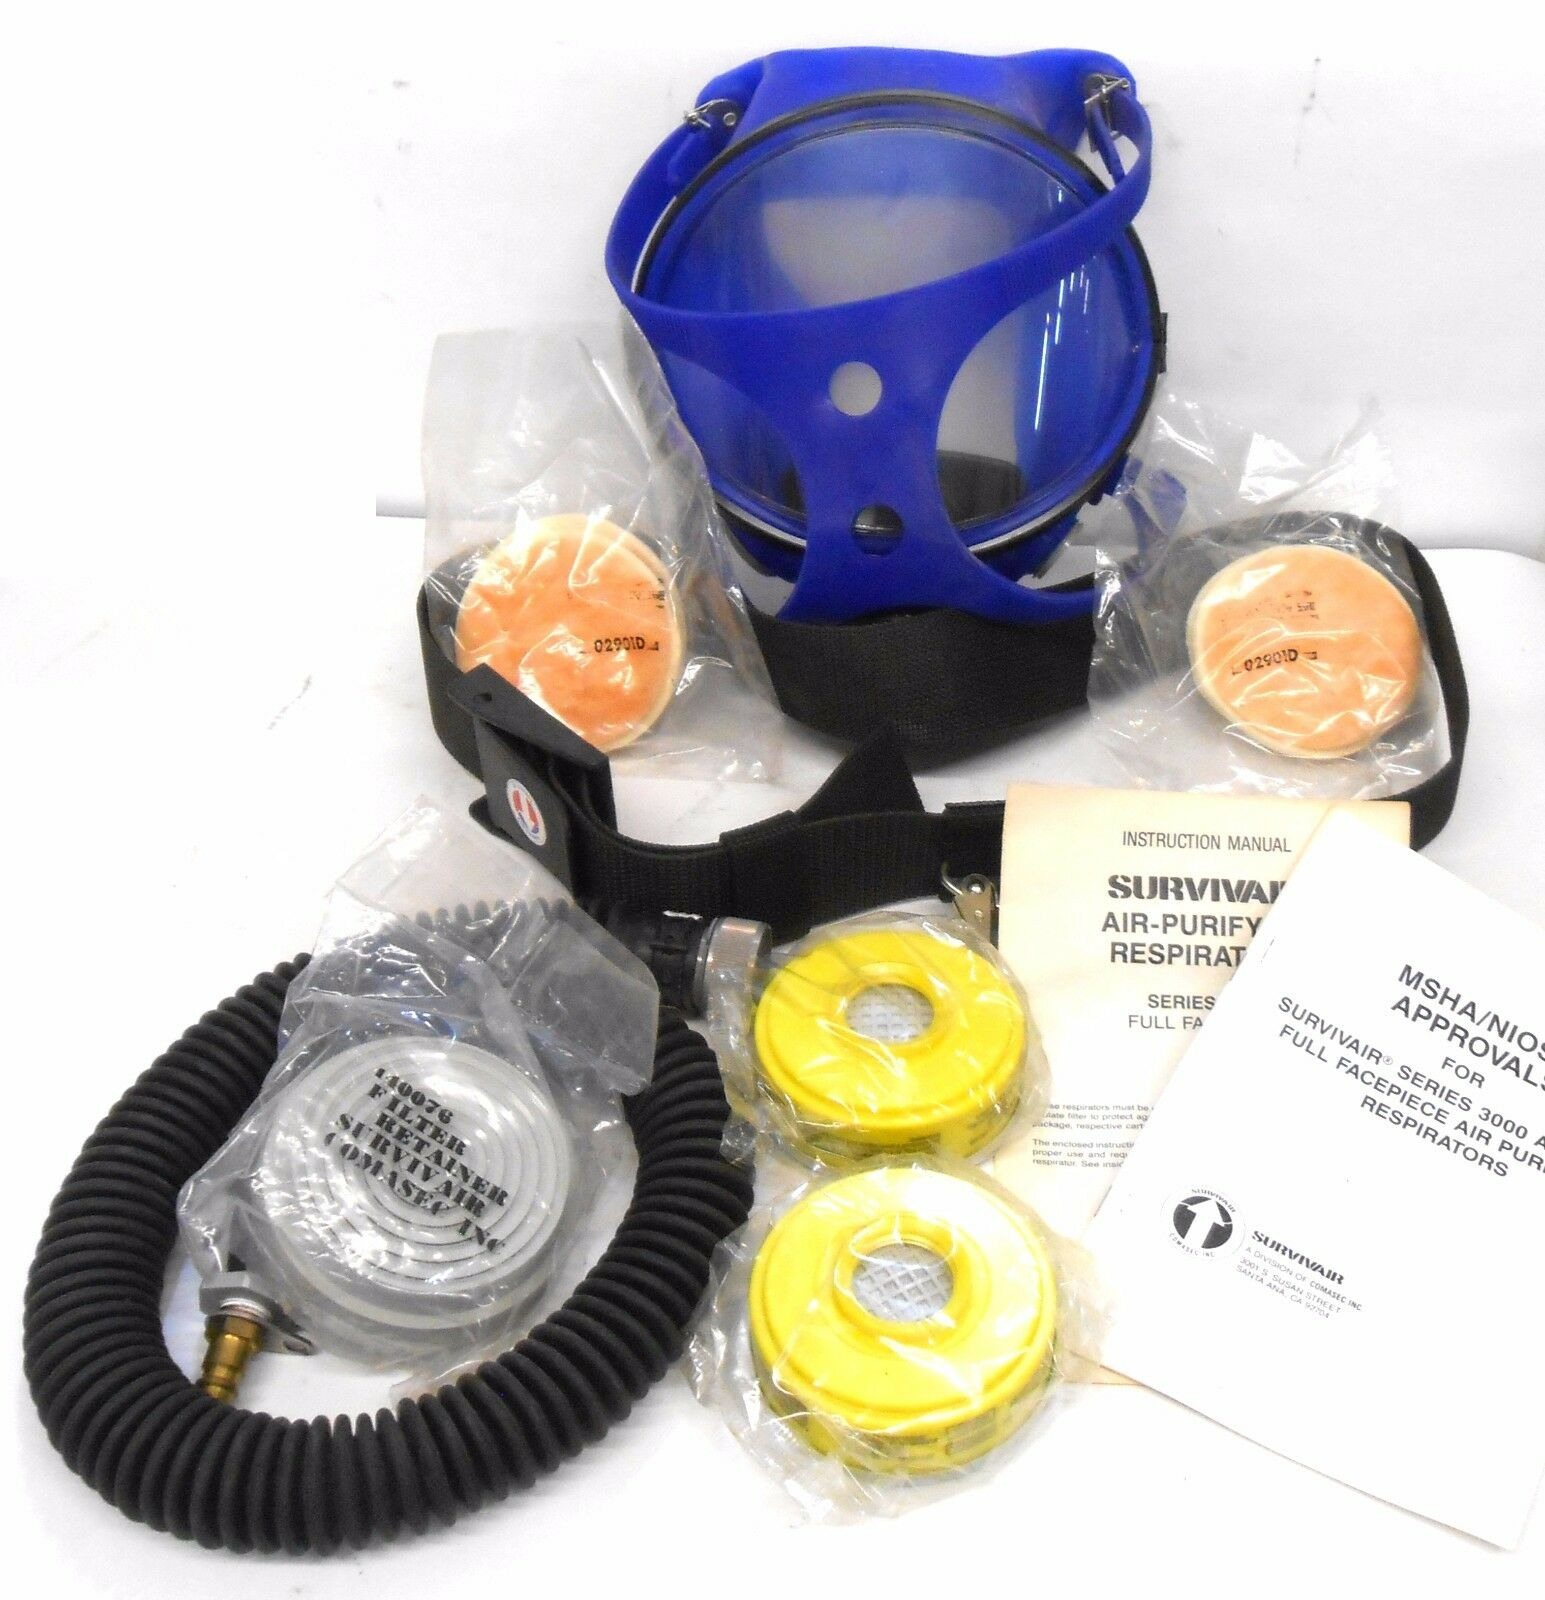 SUVIVAIR 4200-00 FULL FACE AIR PURIFYING RESPIRATOR